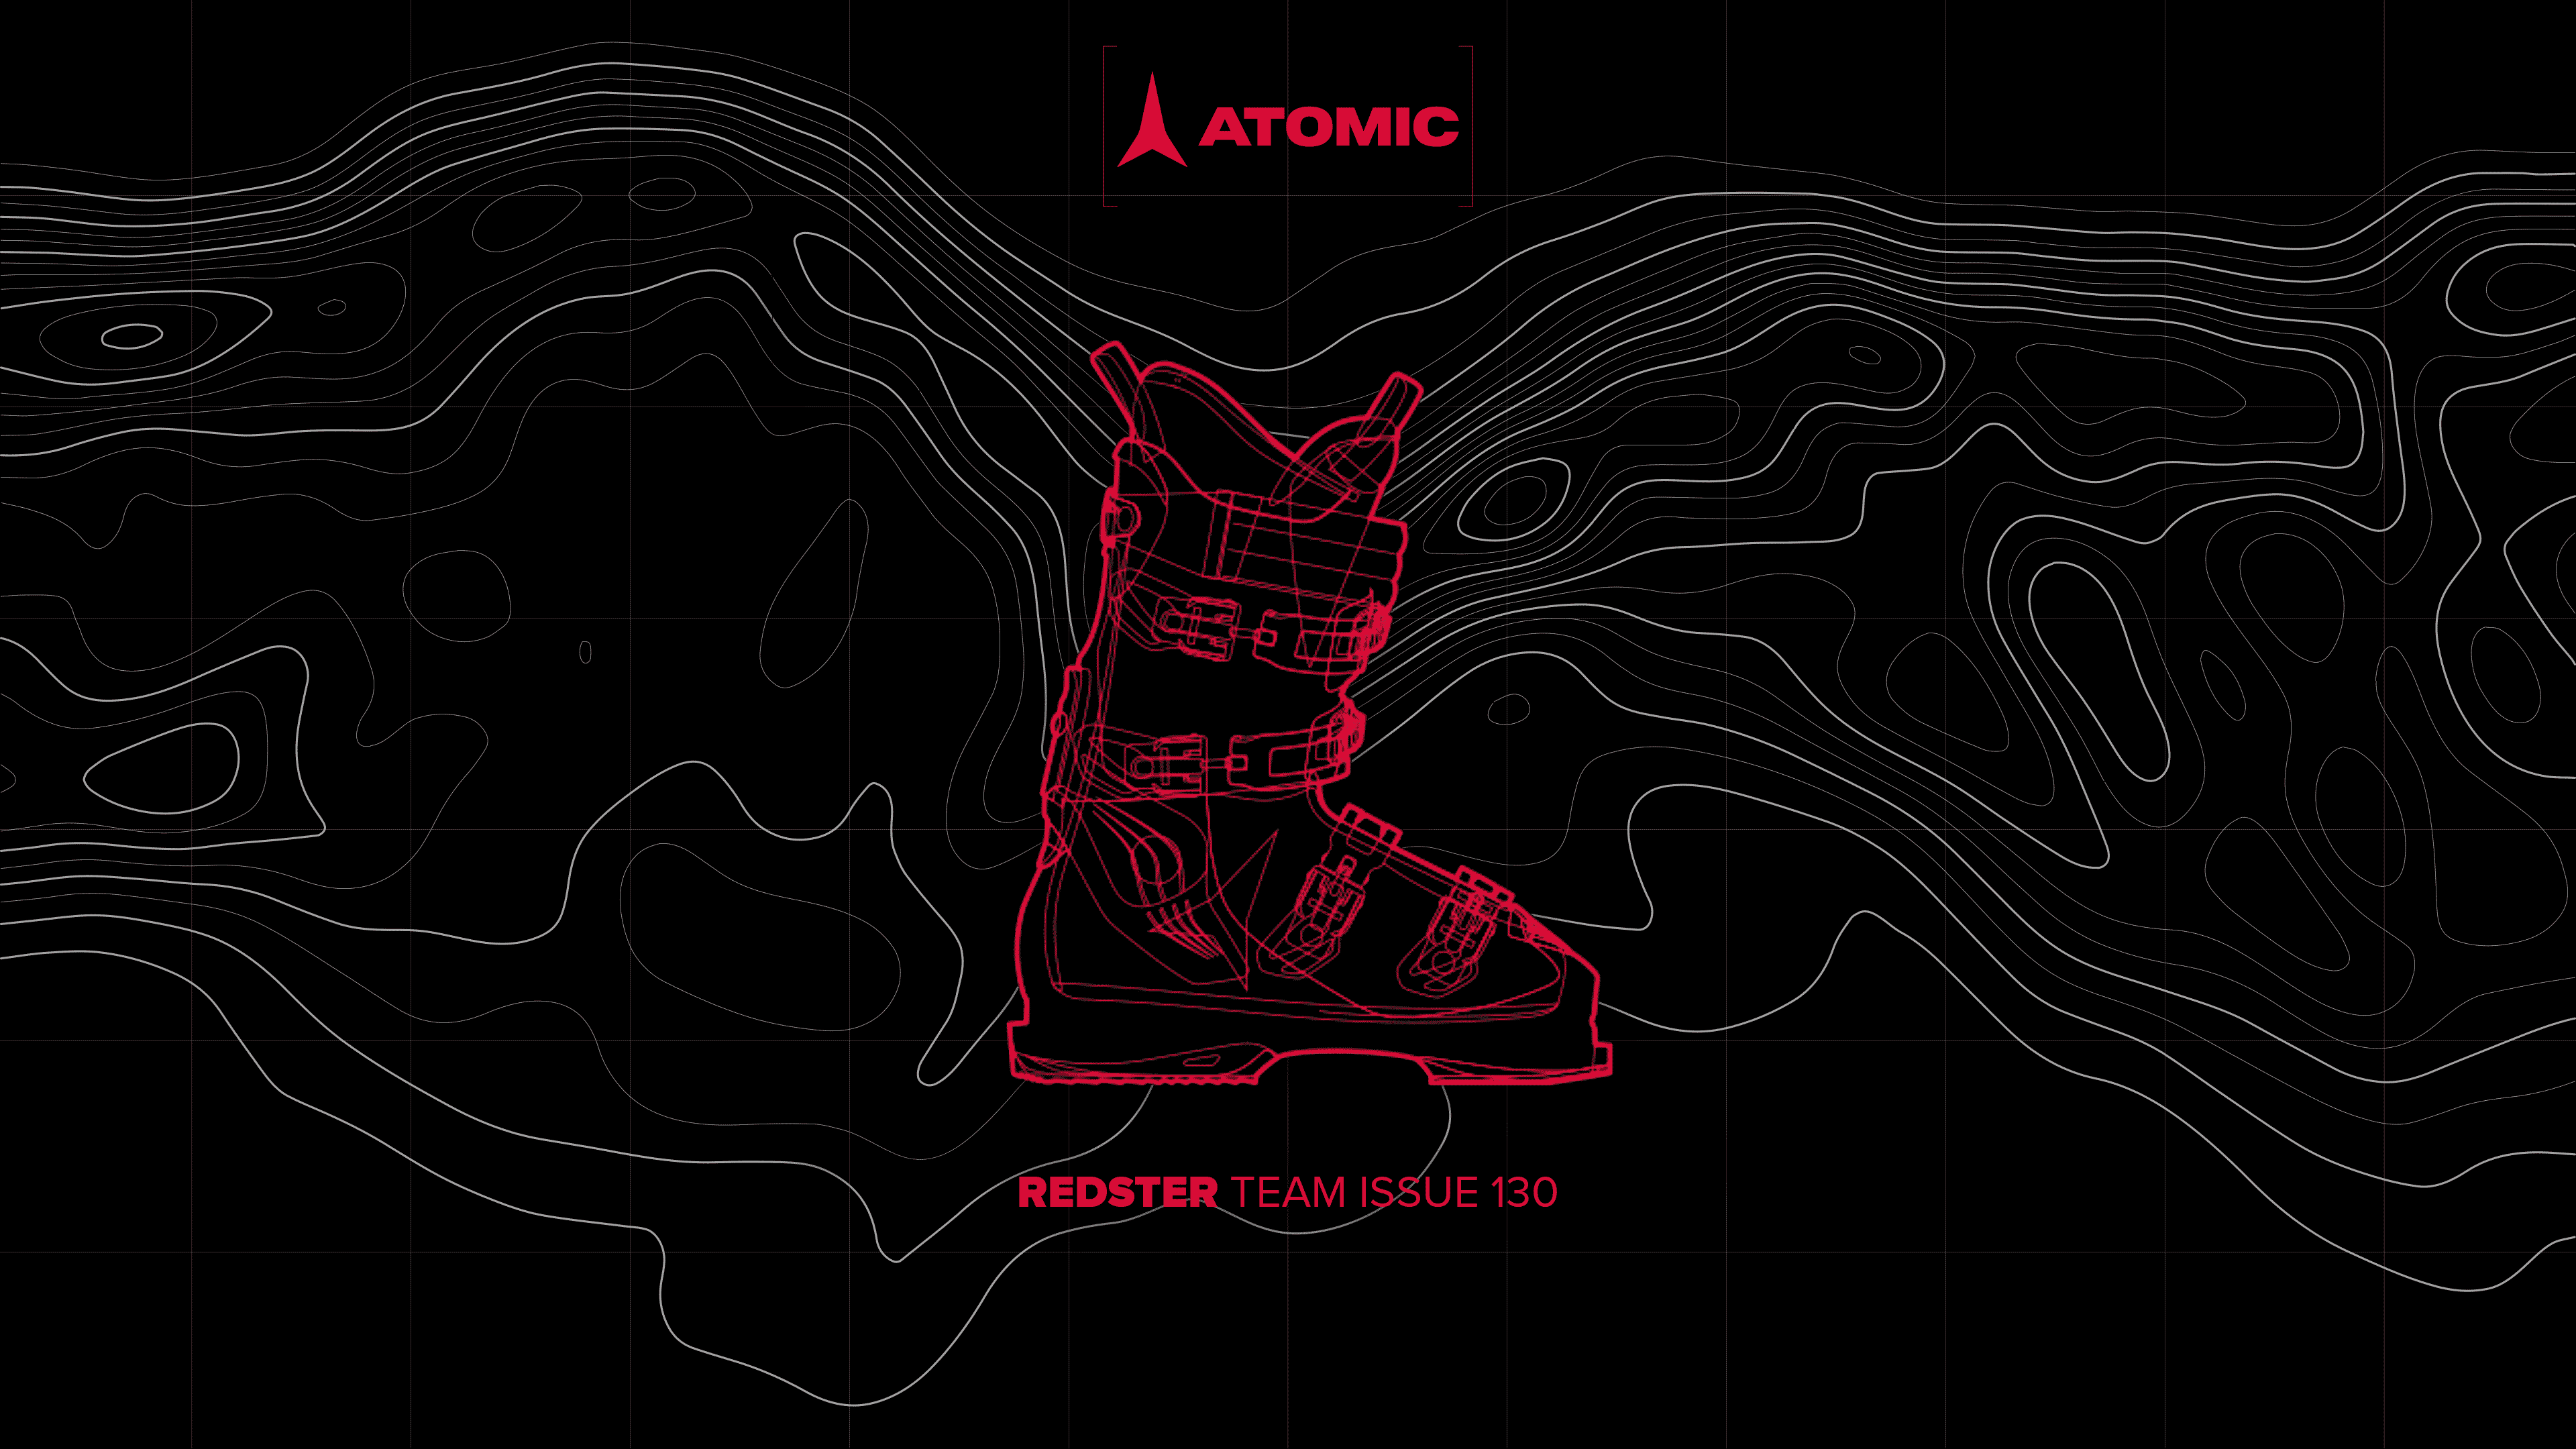 ATOMIC-product-boots